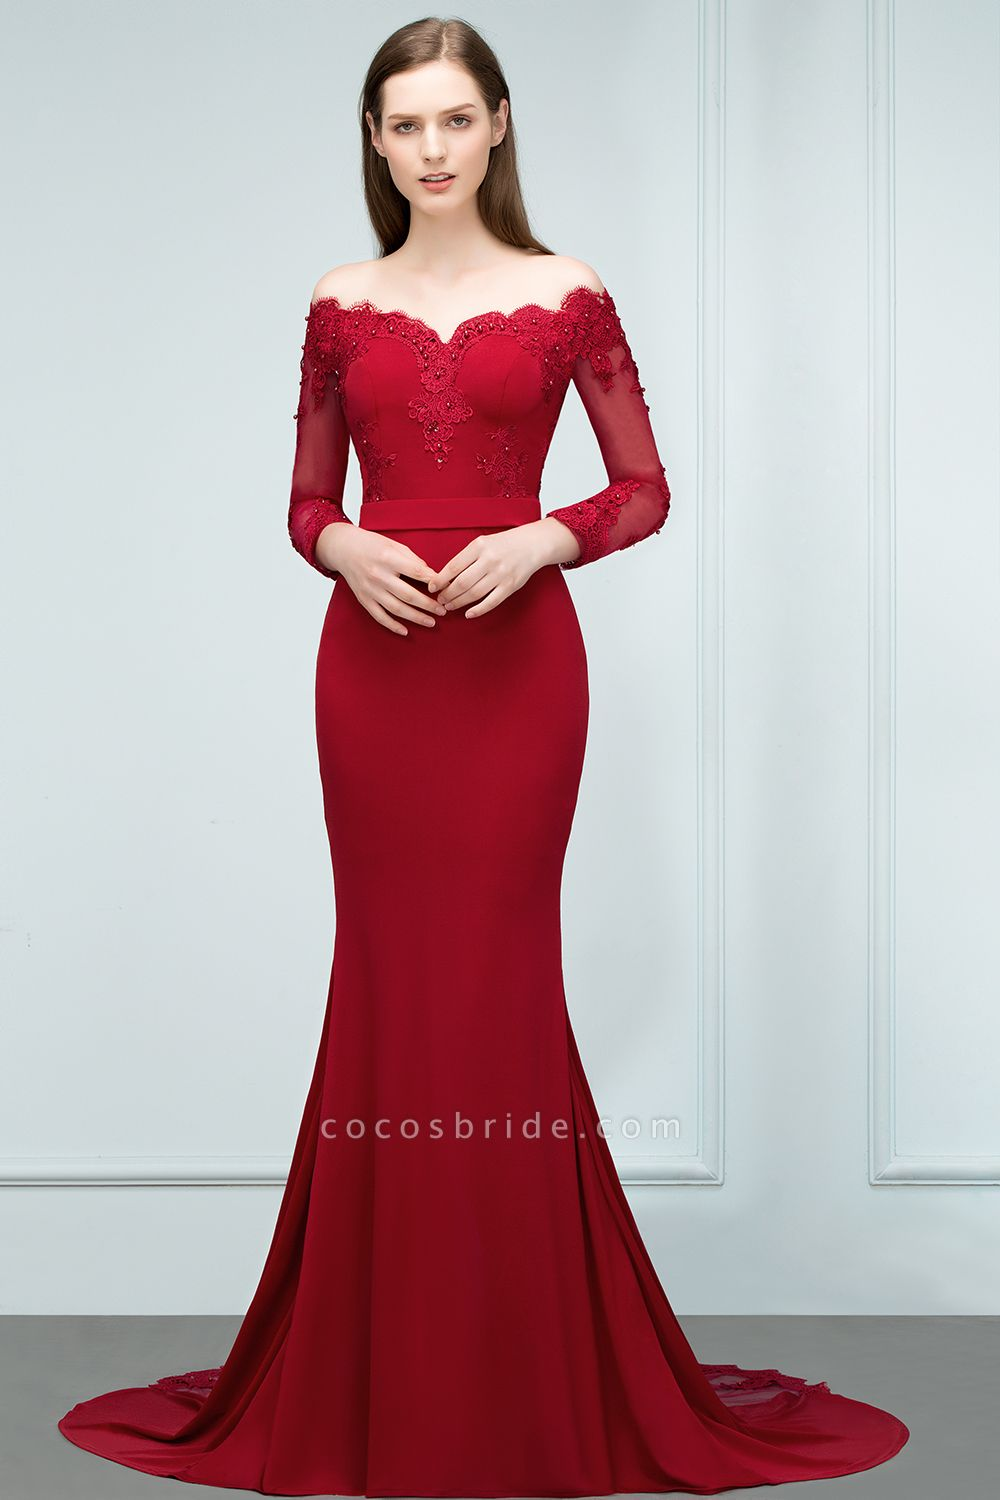 Mermaid Charmeuse Off-the-Shoulder V-Neck Long-Sleeves Floor-Length Bridesmaid Dress with Appliques